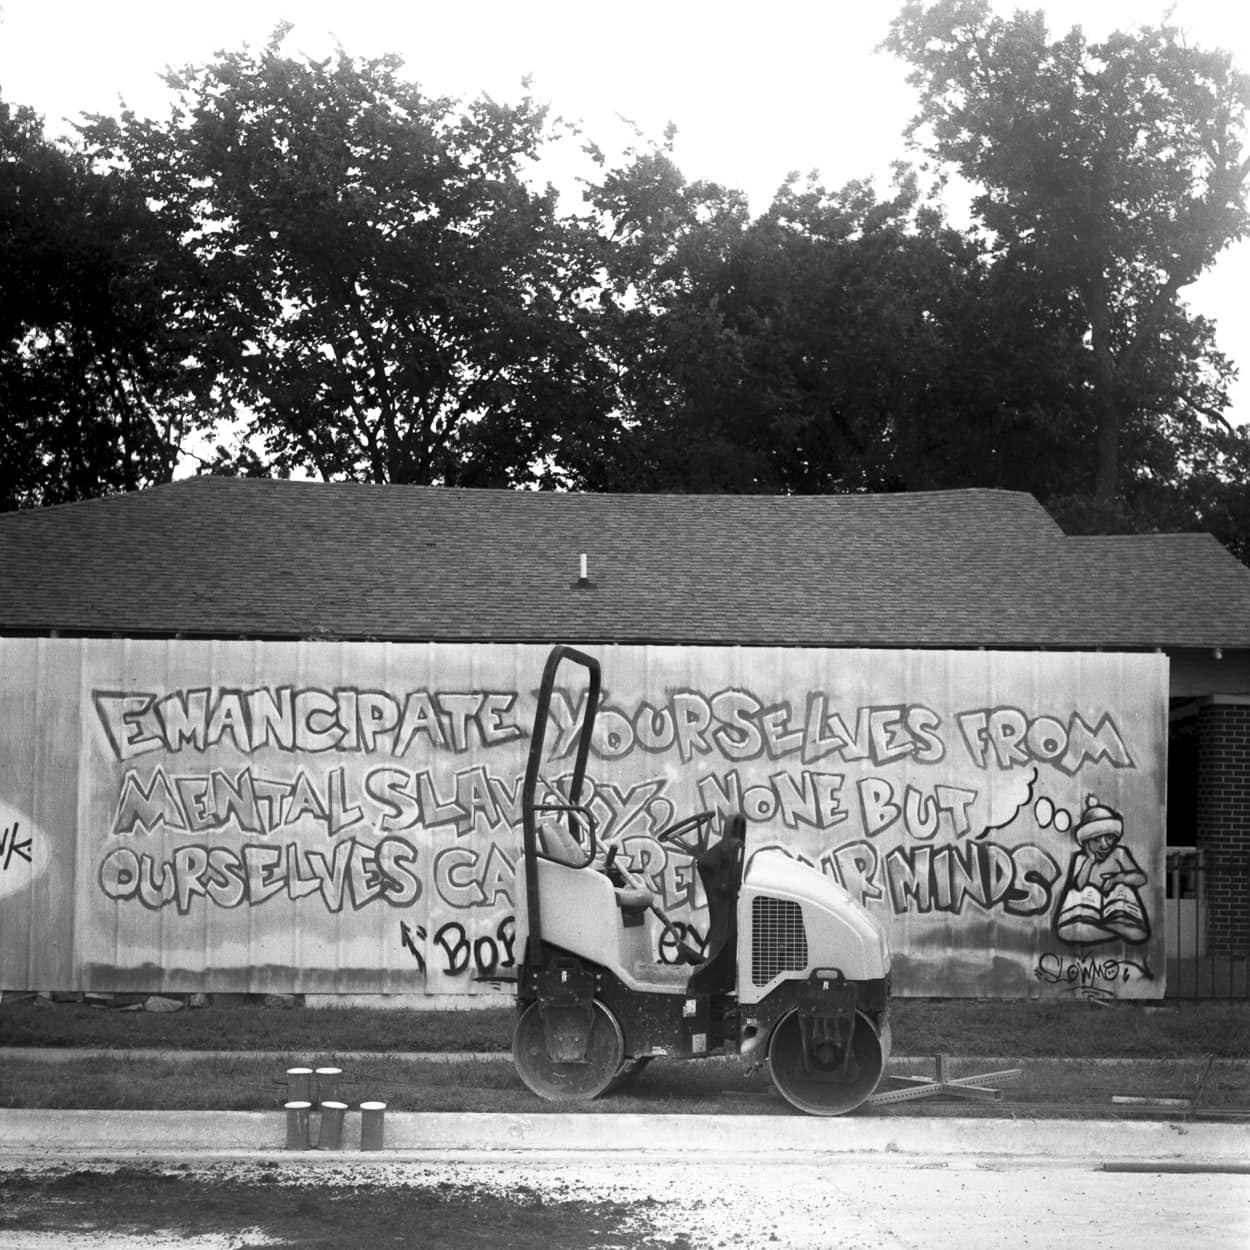 A road roller in front of graffiti quoting by Bob Marley